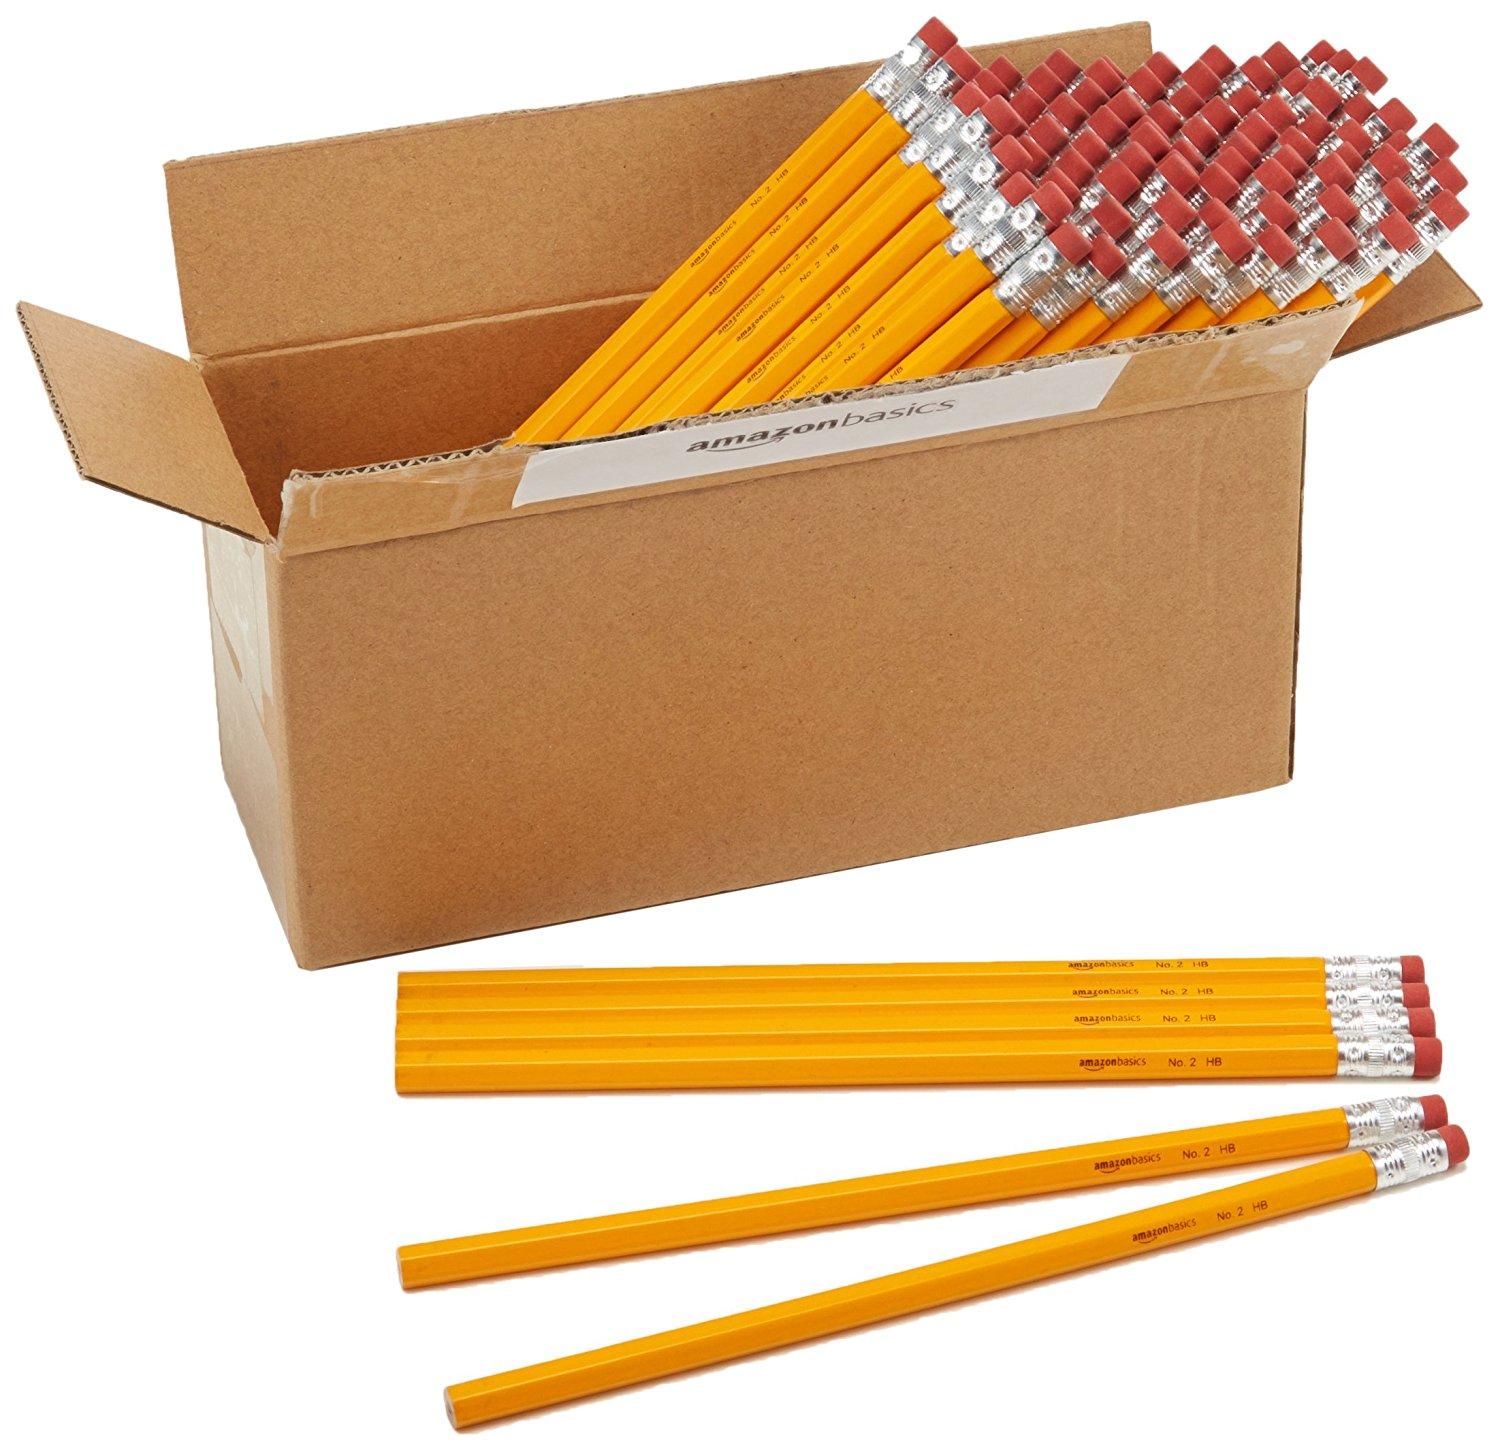 Picture of What Students Will Need